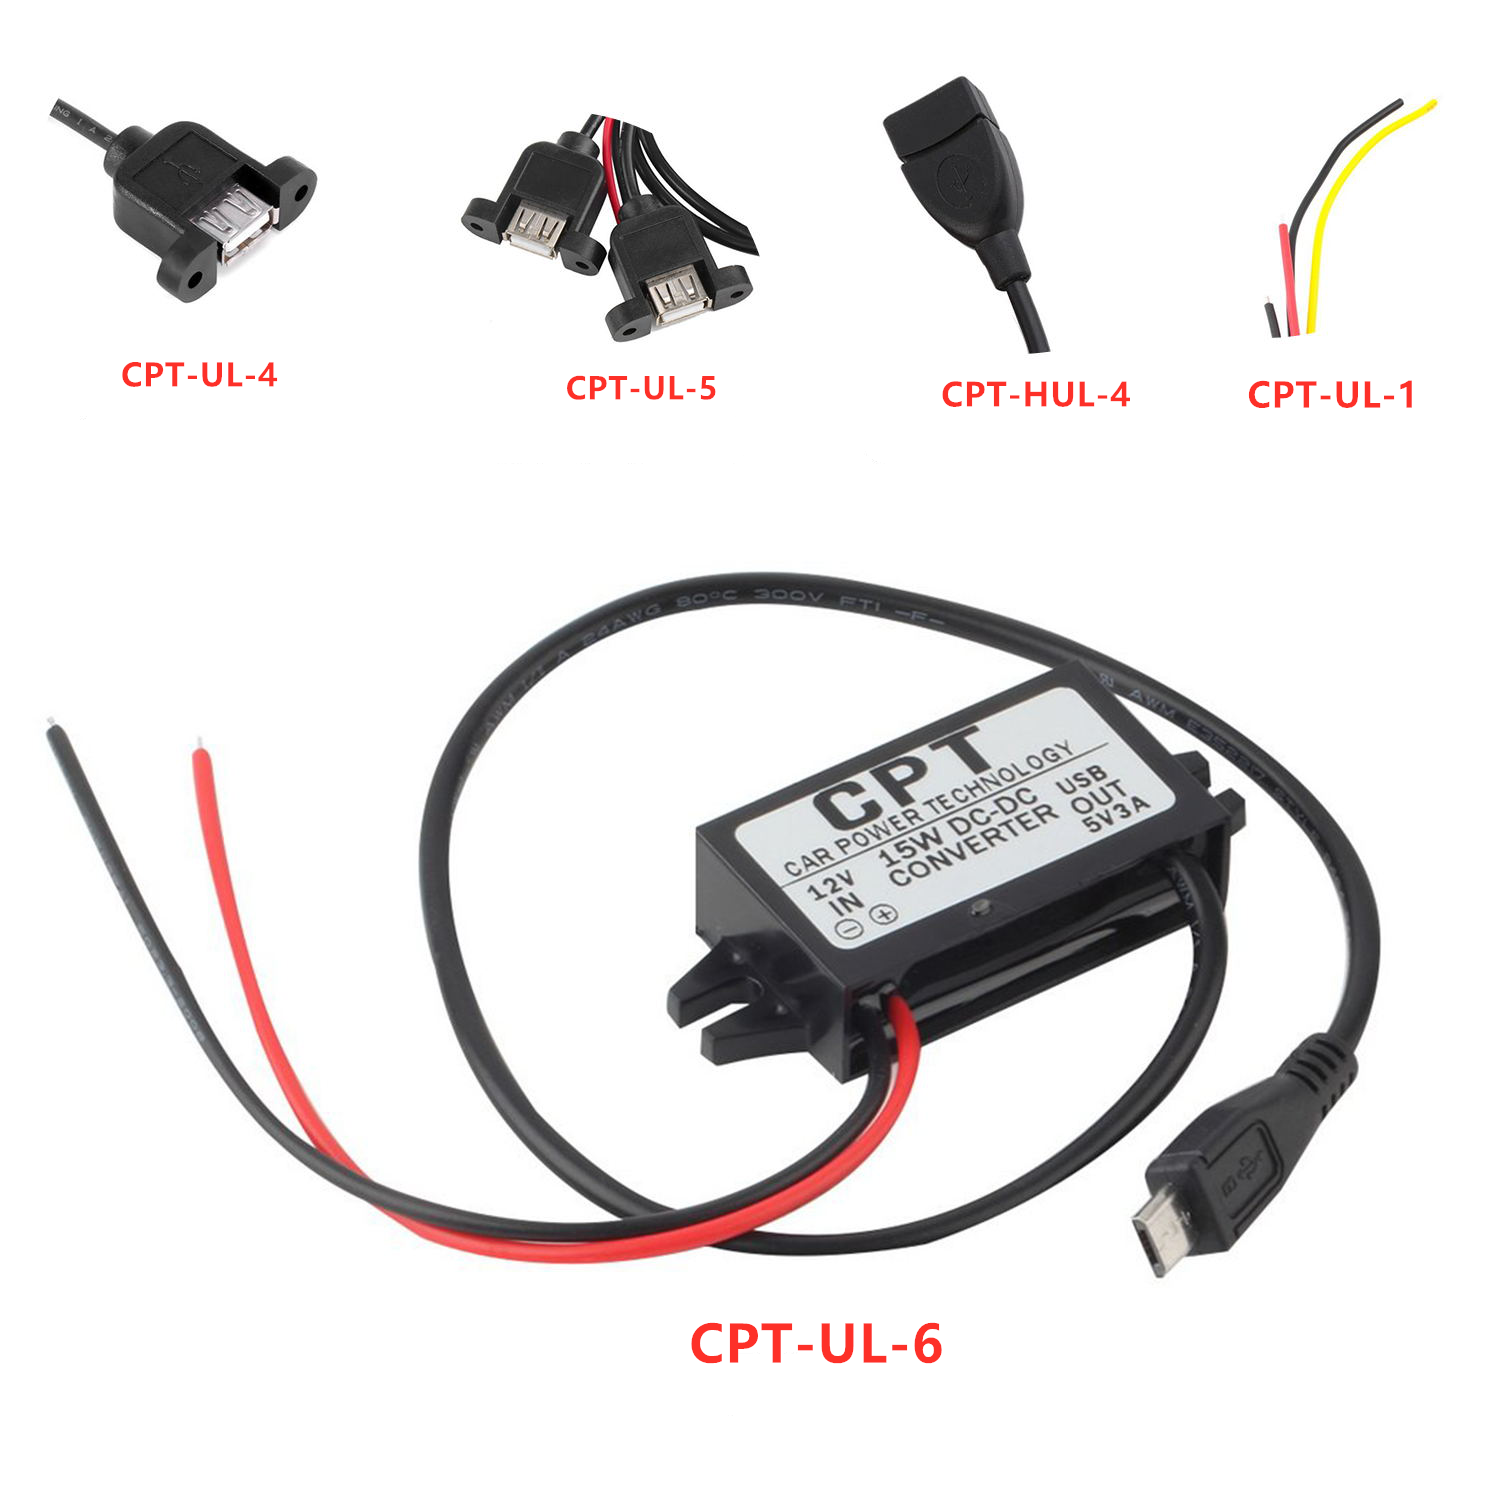 5 Types <font><b>Car</b></font> <font><b>Power</b></font> Technology Charger <font><b>DC</b></font> <font><b>Converter</b></font> Module Single Port <font><b>12V</b></font> <font><b>To</b></font> <font><b>5V</b></font> <font><b>3A</b></font> 15W with Micro USB Cable Dropshipping image